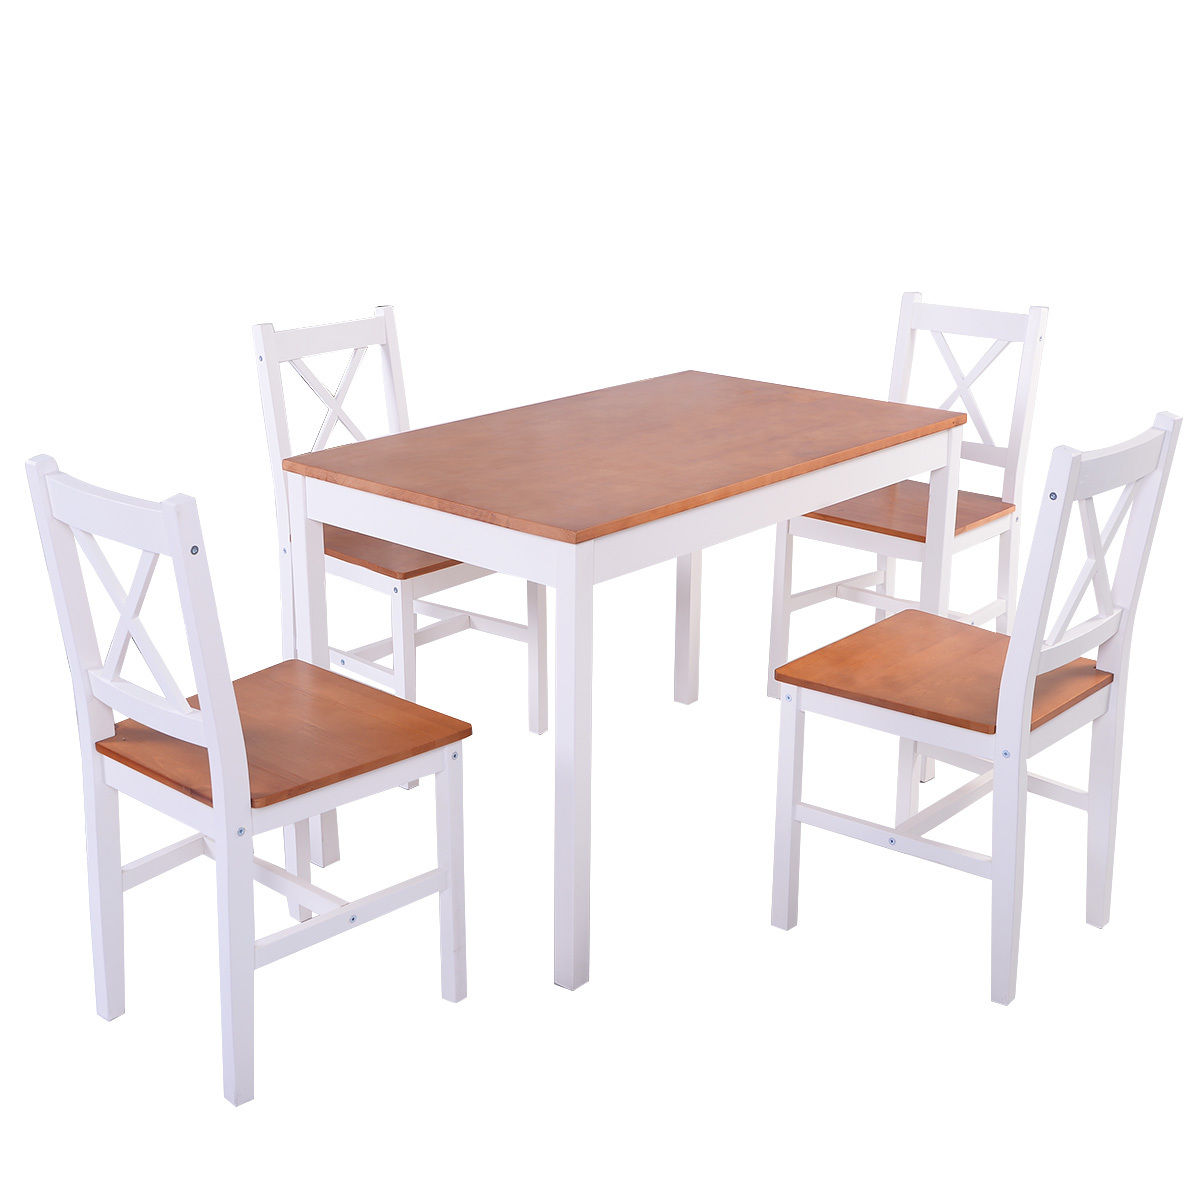 Costway 5PCS Pine Wood Dinette Dining Room Set Table and 4 Chairs Home Kitchen Furniture by Costway